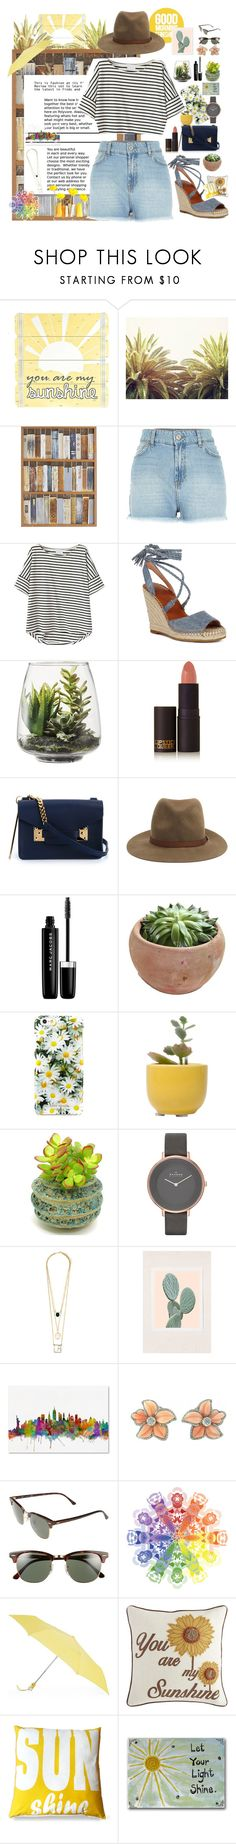 """""""As Long as the Sun Shines"""" by tiffanytma ❤ liked on Polyvore featuring WALL, Pier 1 Imports, River Island, Joie, Threshold, Lipstick Queen, Sophie Hulme, rag & bone, Marc Jacobs and Kate Spade"""